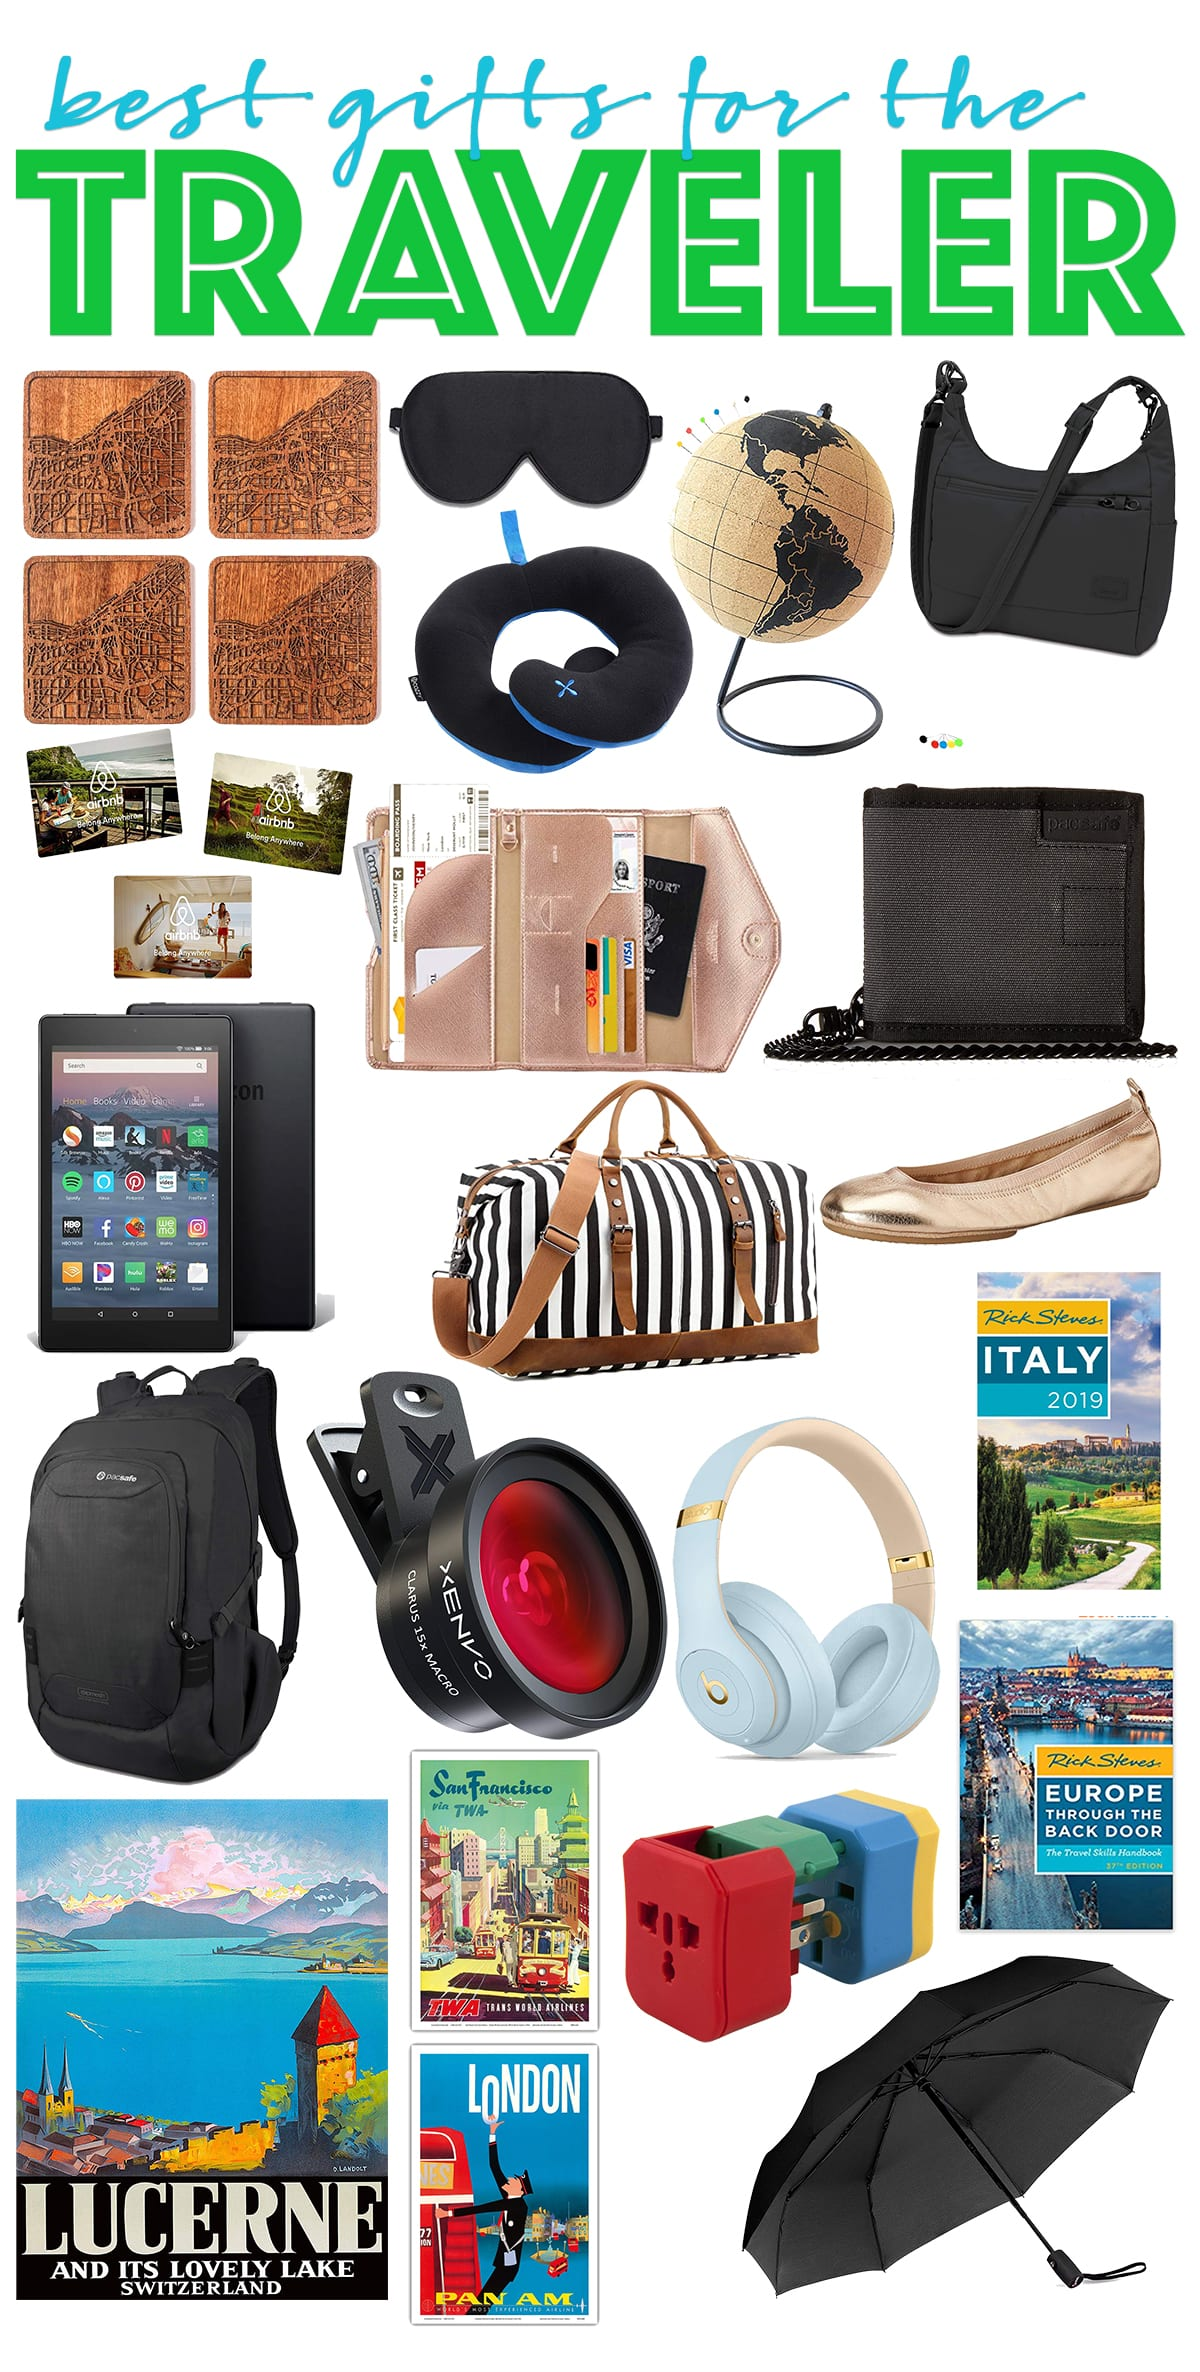 The Best Travel Gear, Essentials and Gifts